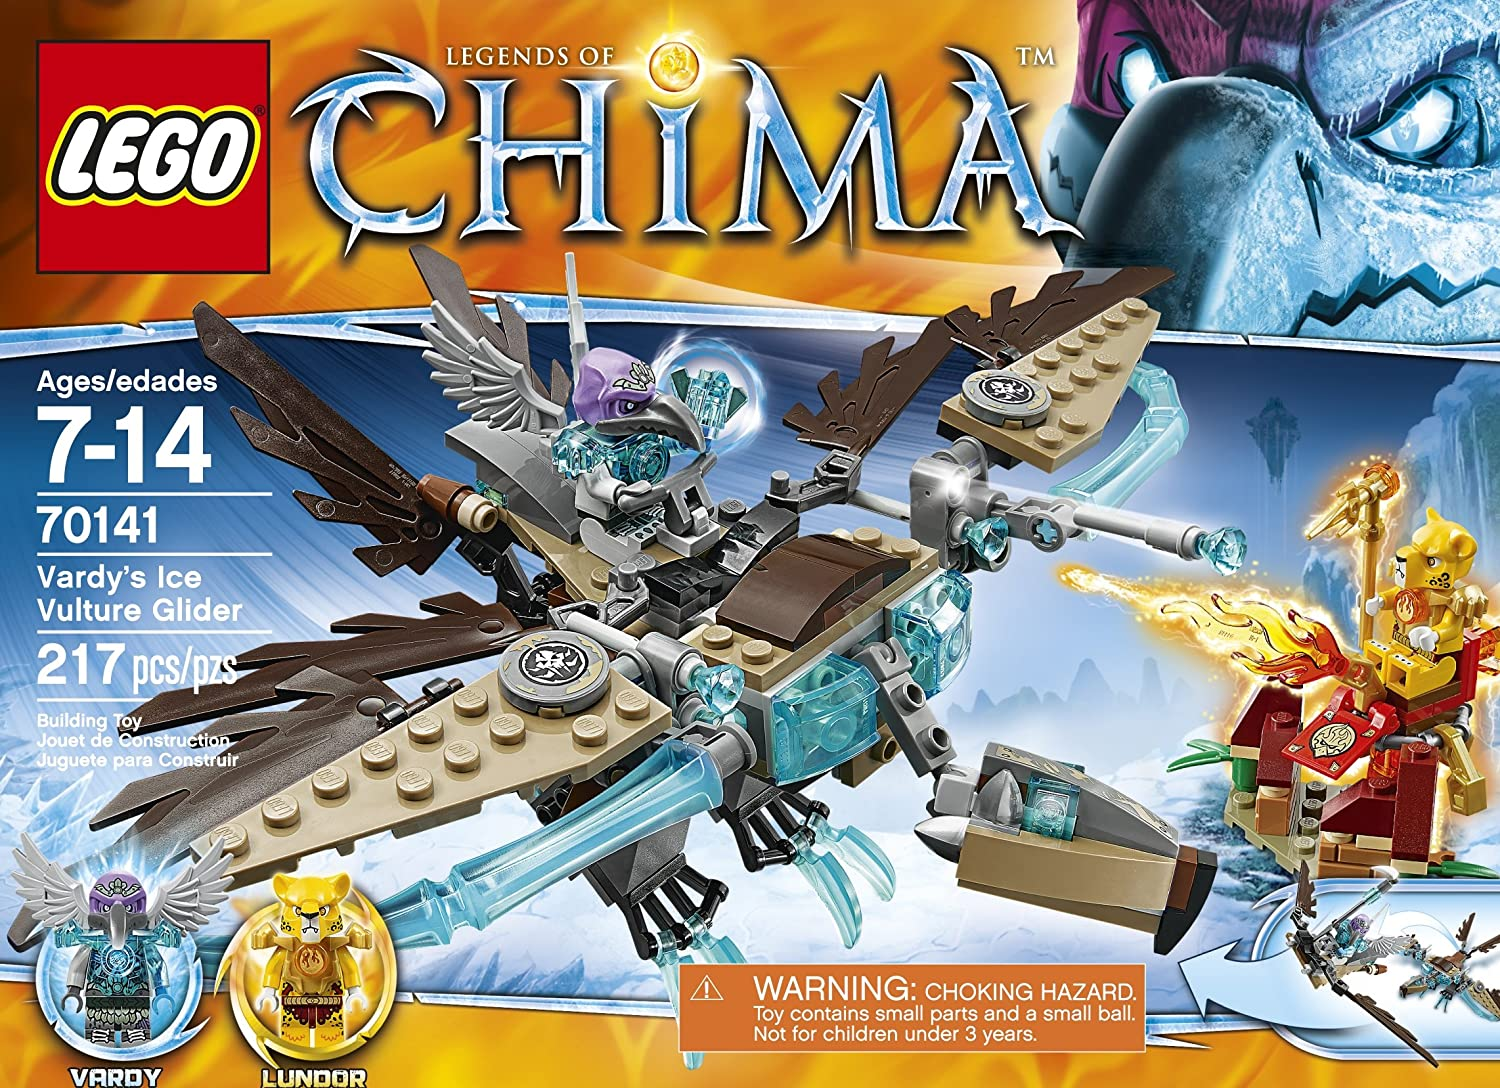 Amazon chima party supplies - Amazon Com Lego Chima 70141 Vardy S Ice Vulture Glider Building Toy Toys Games